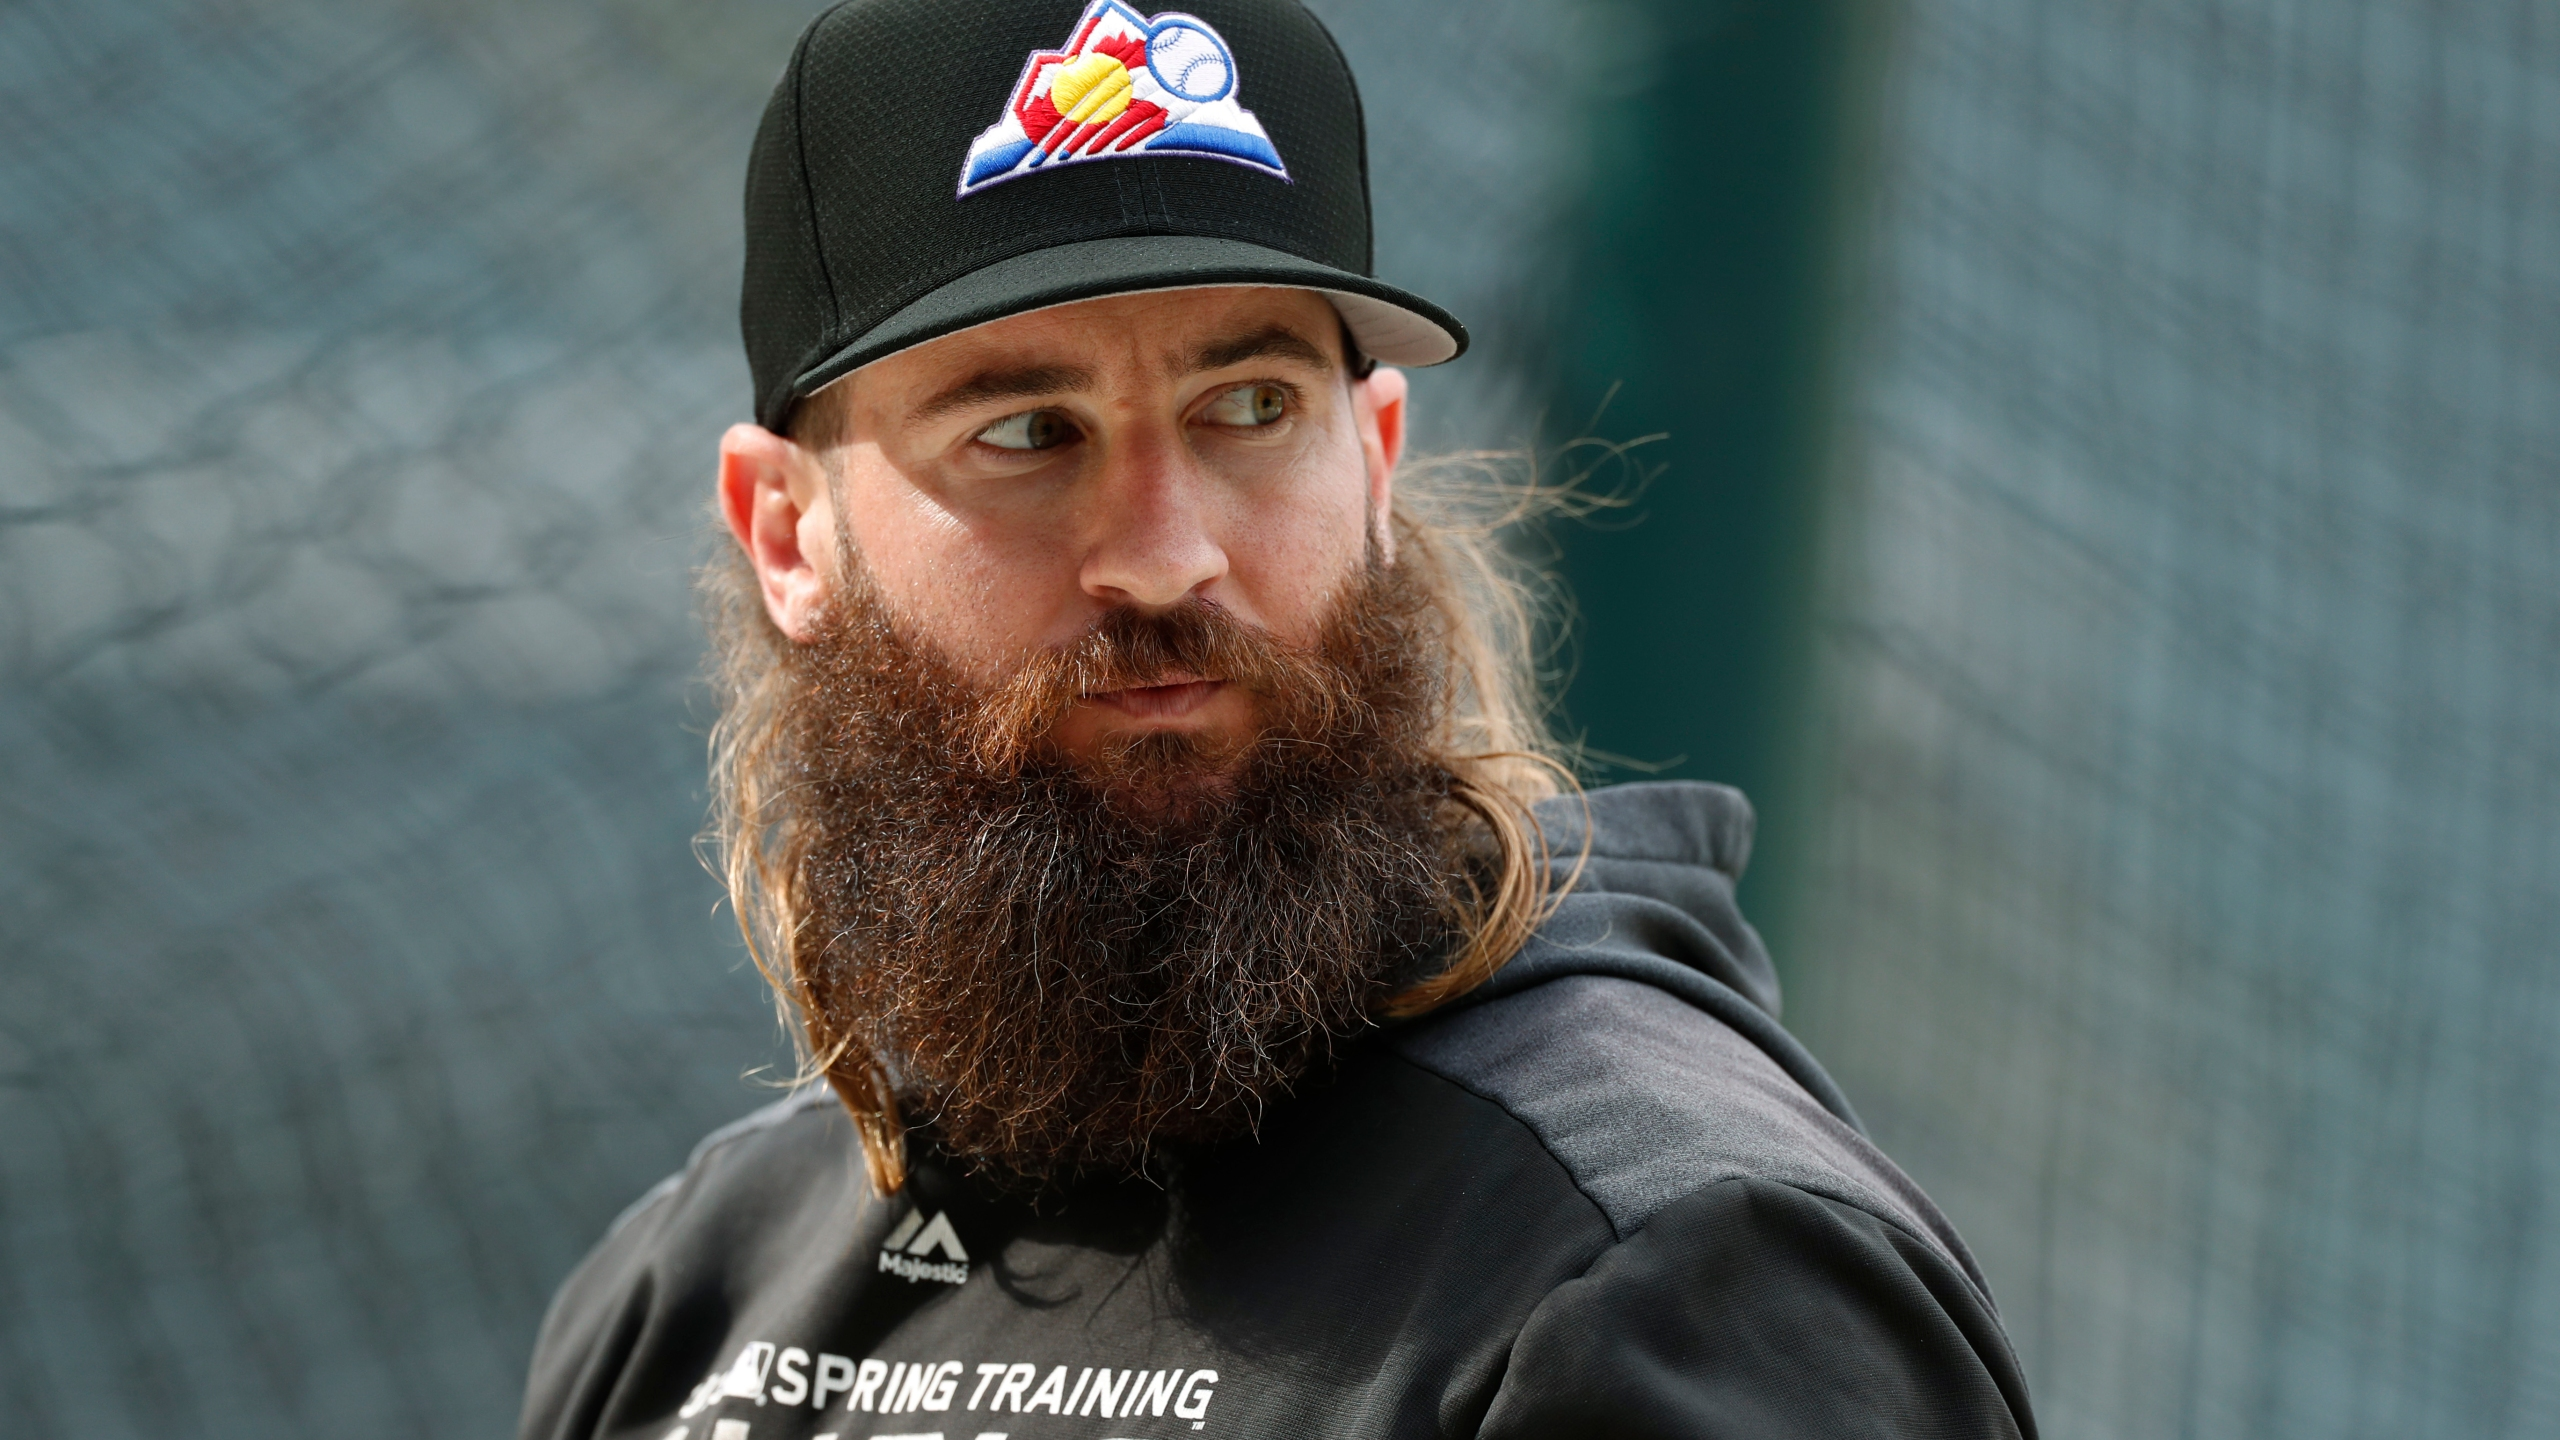 FILE - In this Sept. 11, 2019, file photo, Colorado Rockies right fielder Charlie Blackmon waits to enter the batting cage before the team's baseball game against the St. Louis Cardinals in Denver. (AP Photo/David Zalubowski, File)